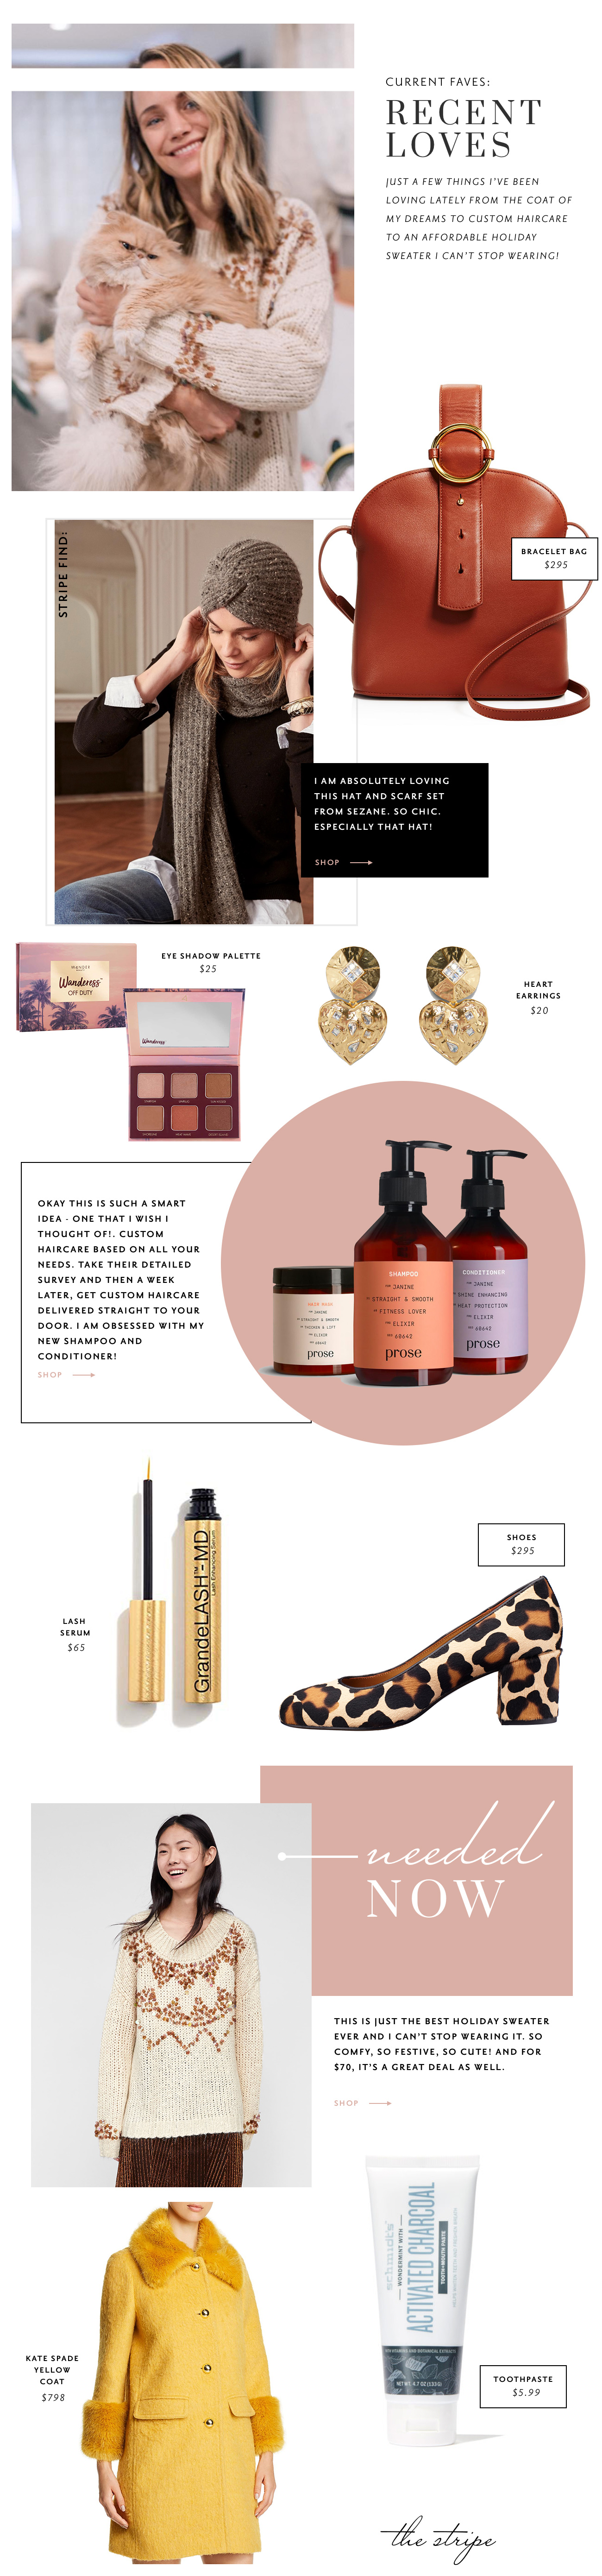 bracelet bag & december 2018 favorite things | grace atwood, the stripe | #margaux #prosehaircare #beautyroundup | thestripe.com